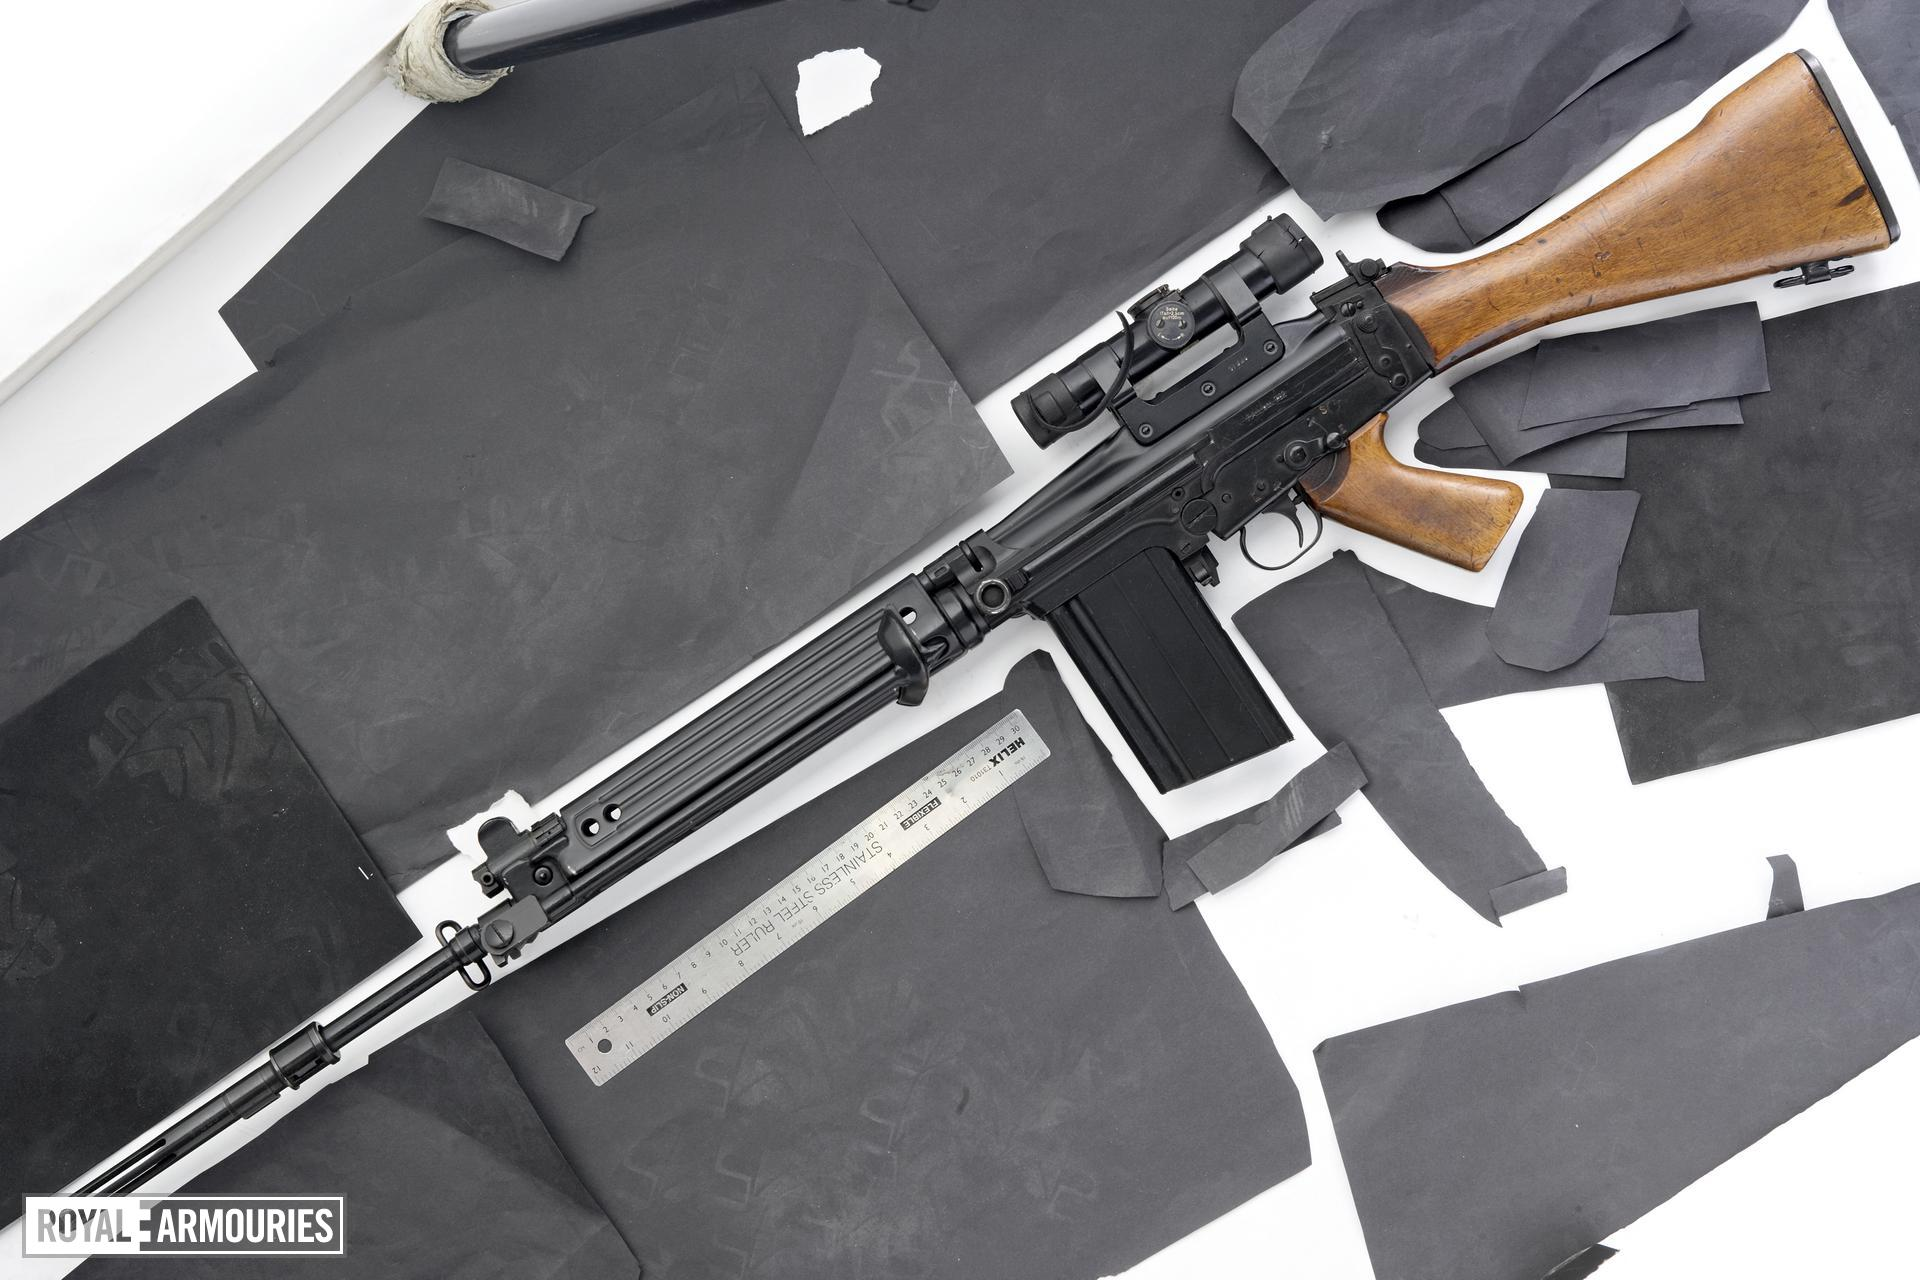 Centrefire automatic sniper rifle - FN FAL G1